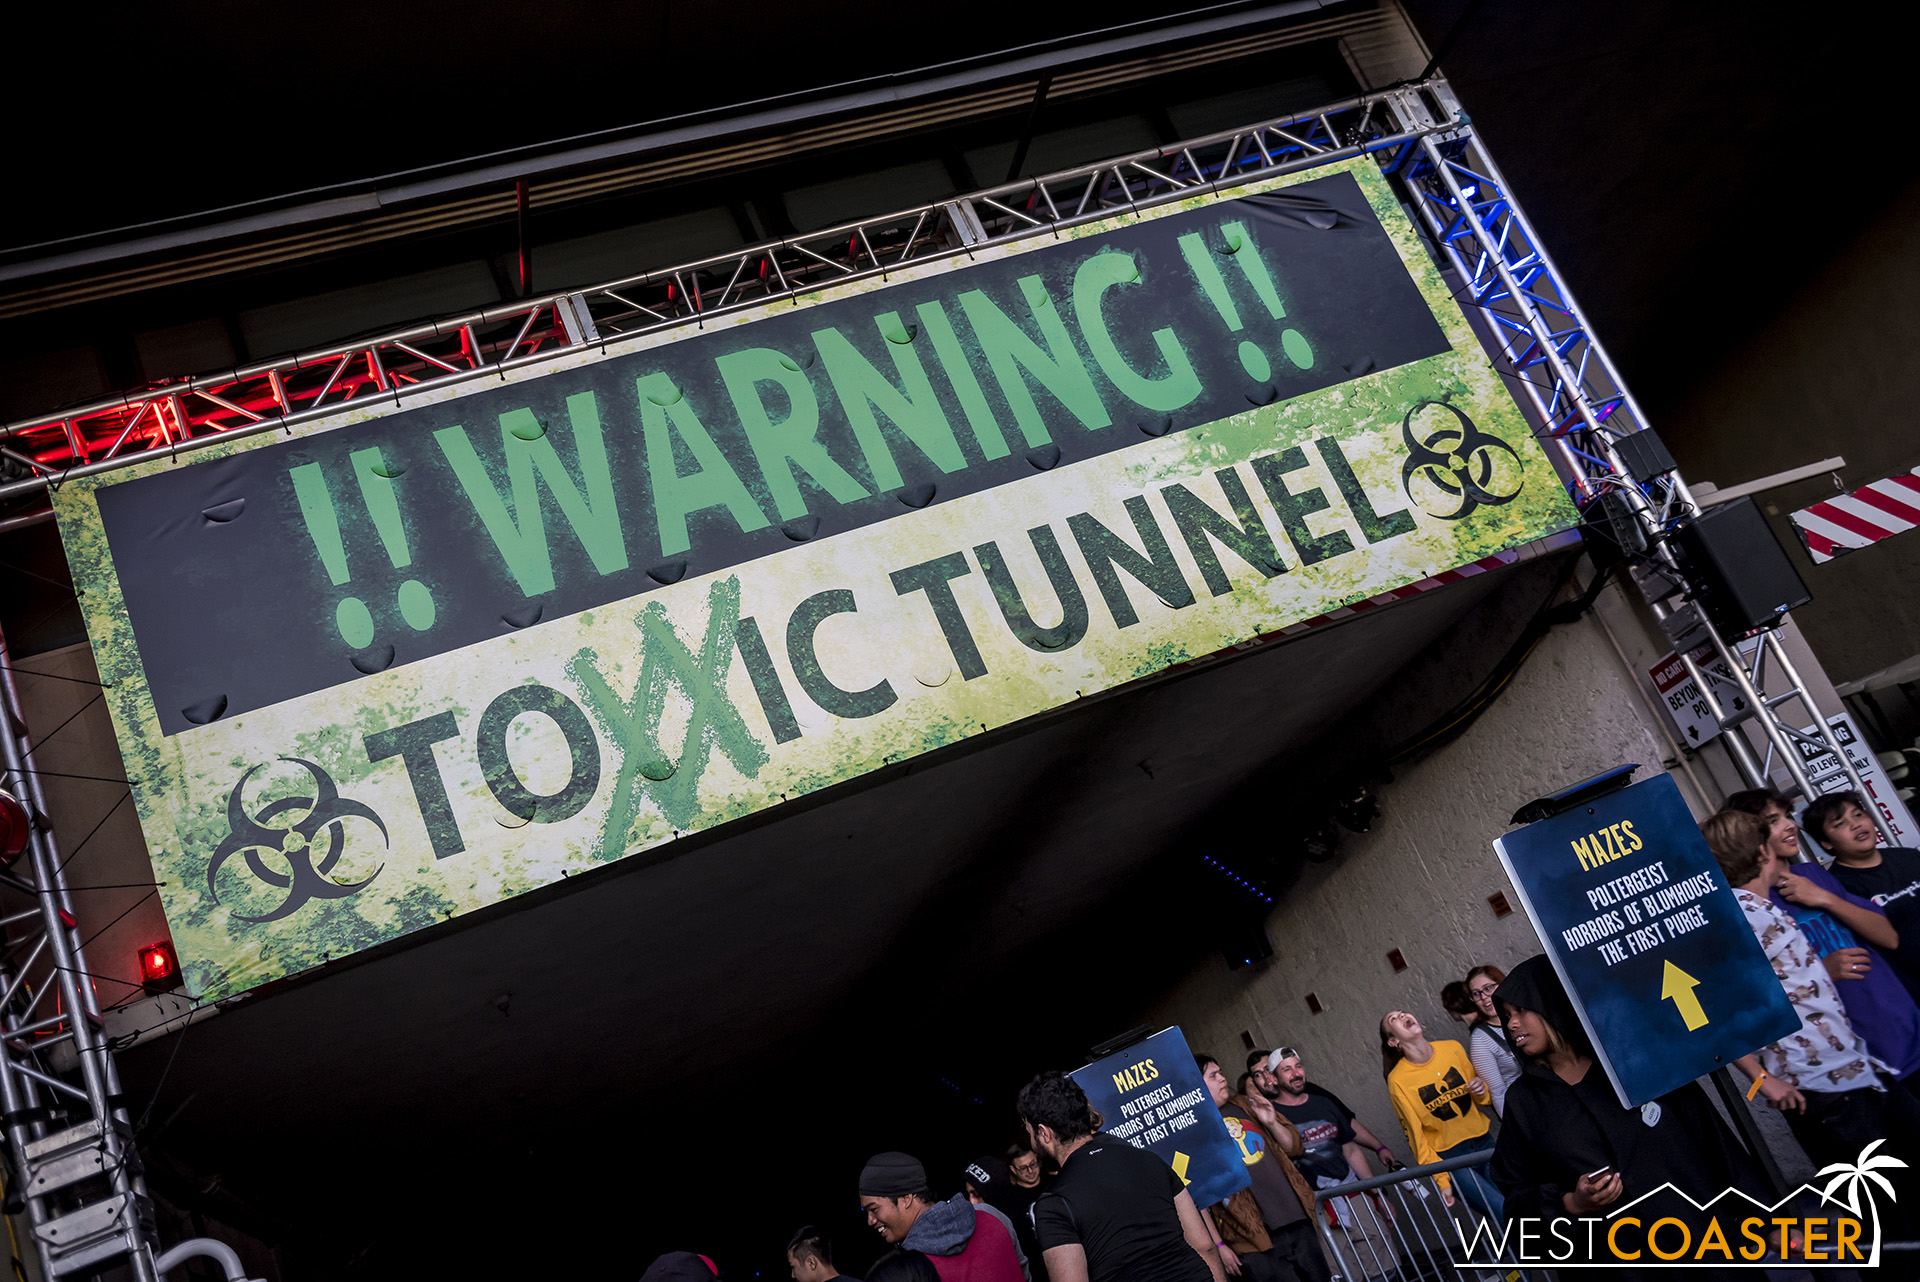 The Toxxic Tunnel! This year with another X!